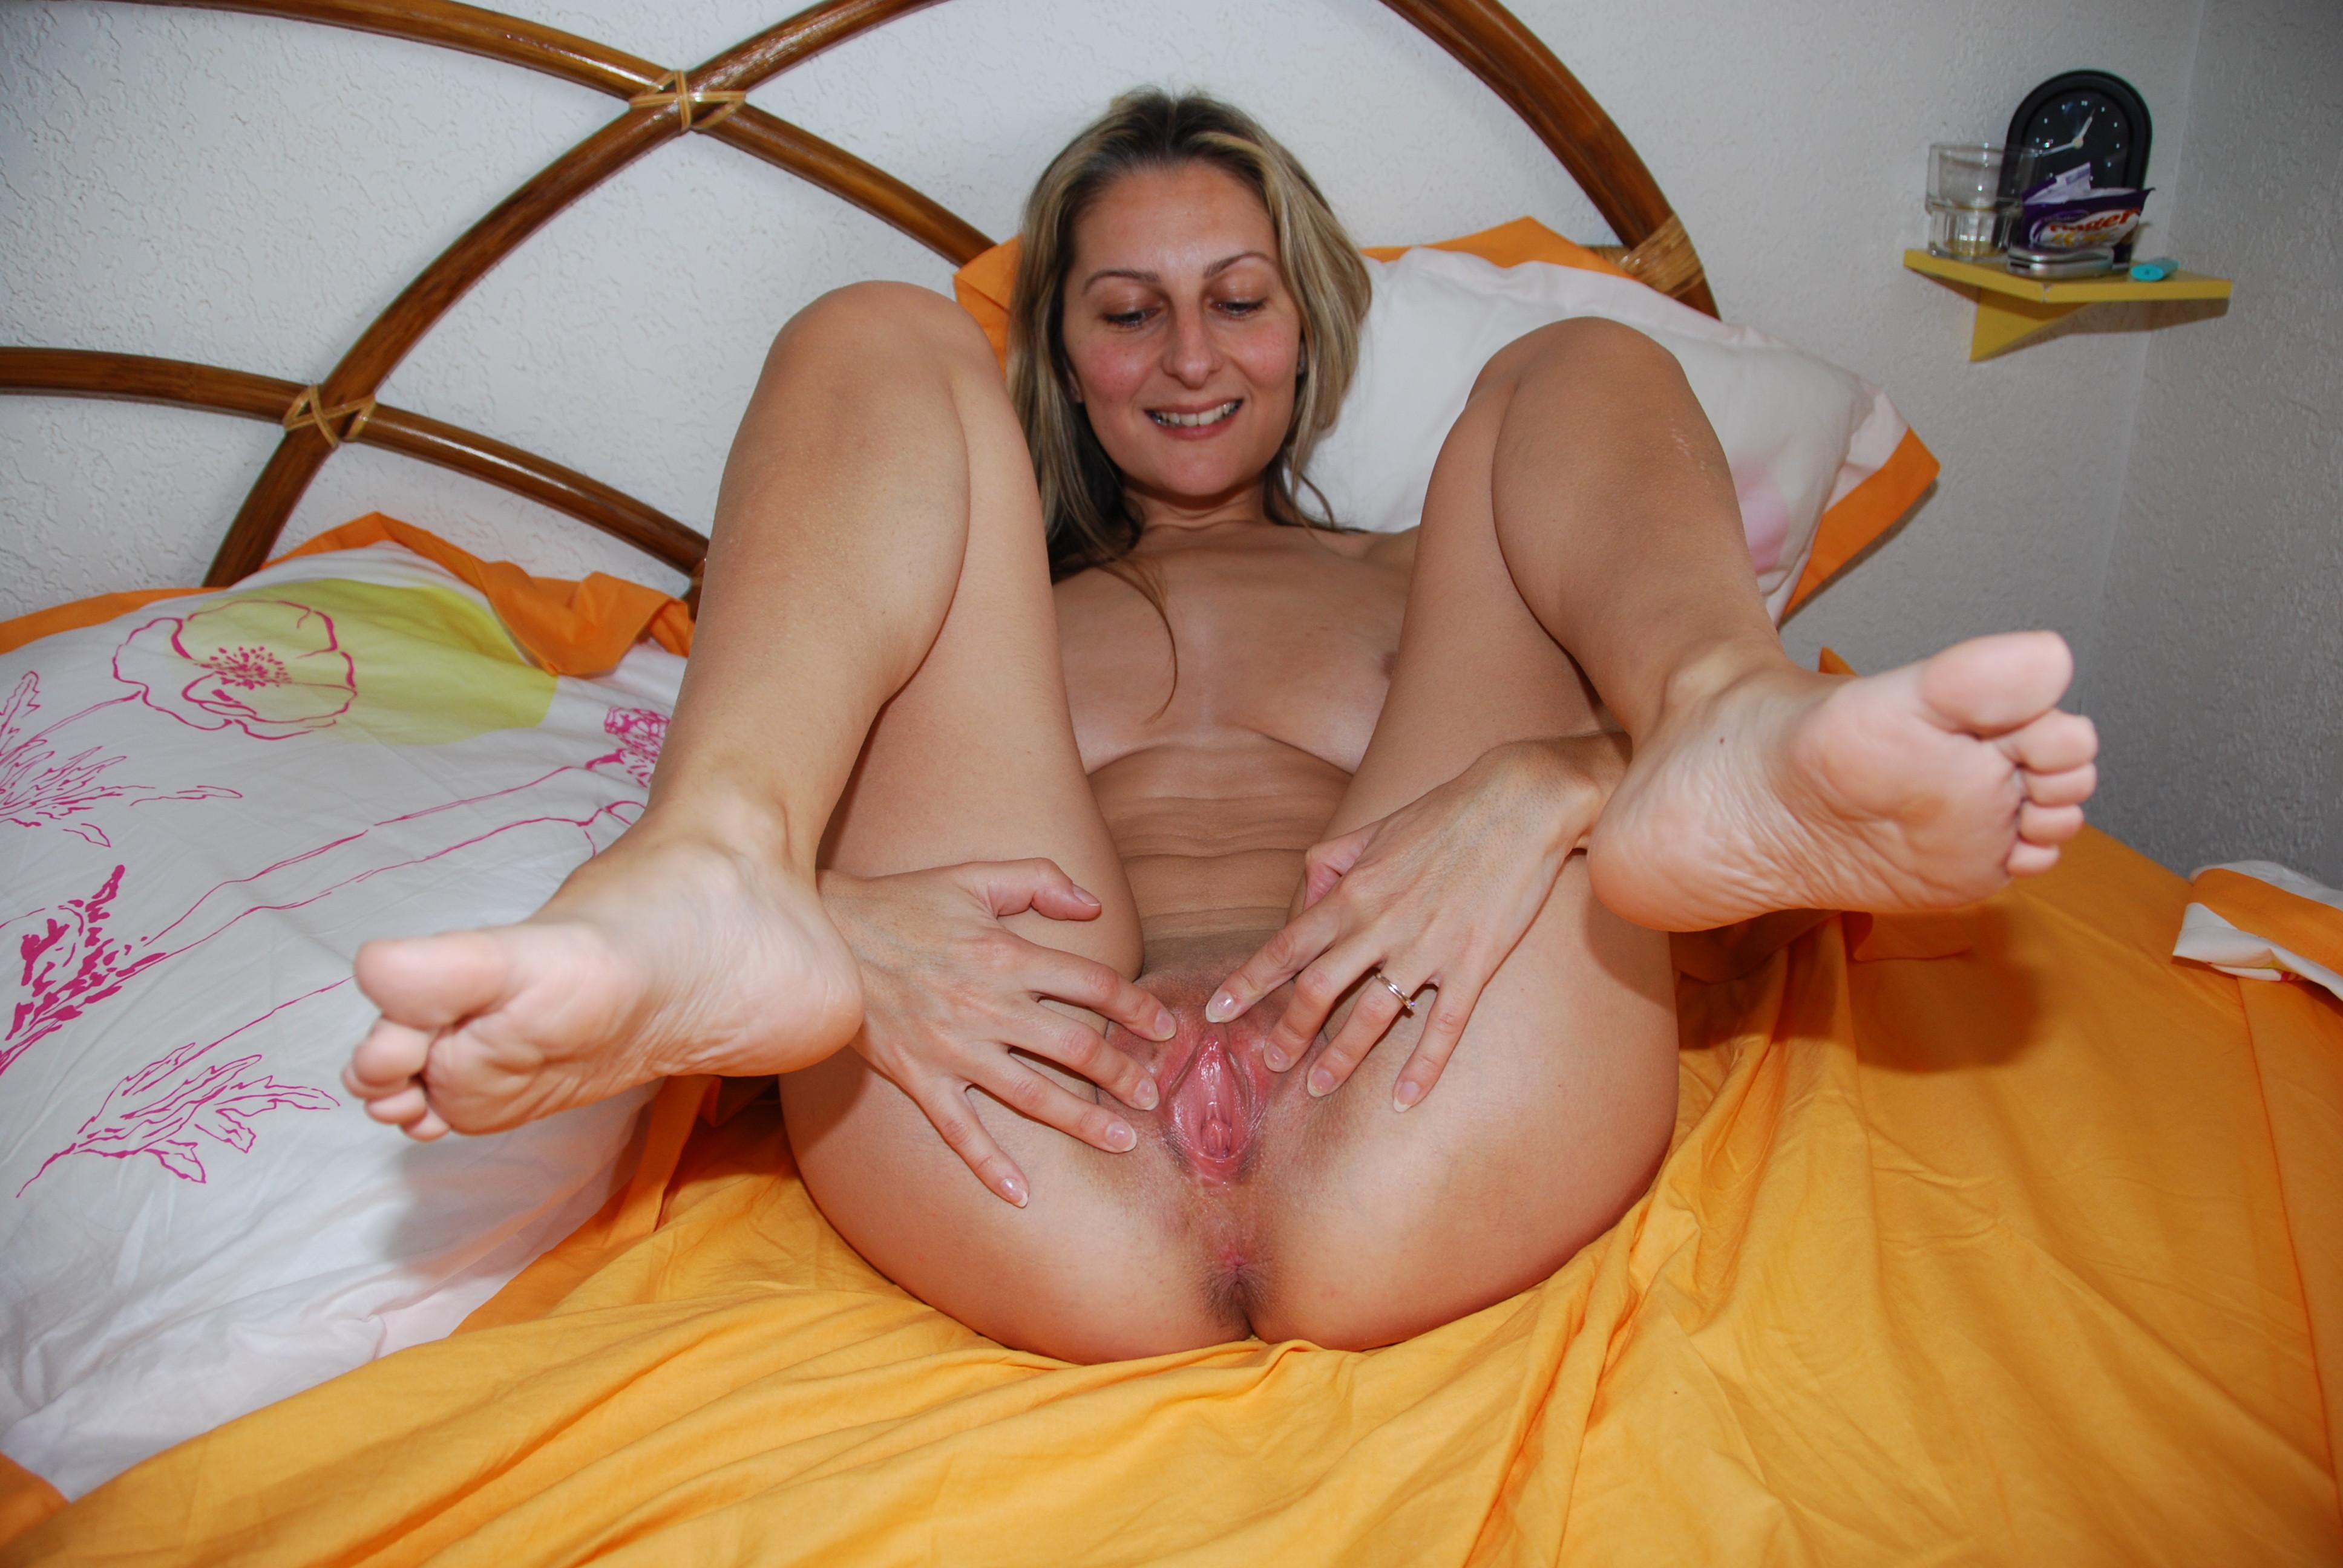 feet pussy I love the smell of feet and pussy 1